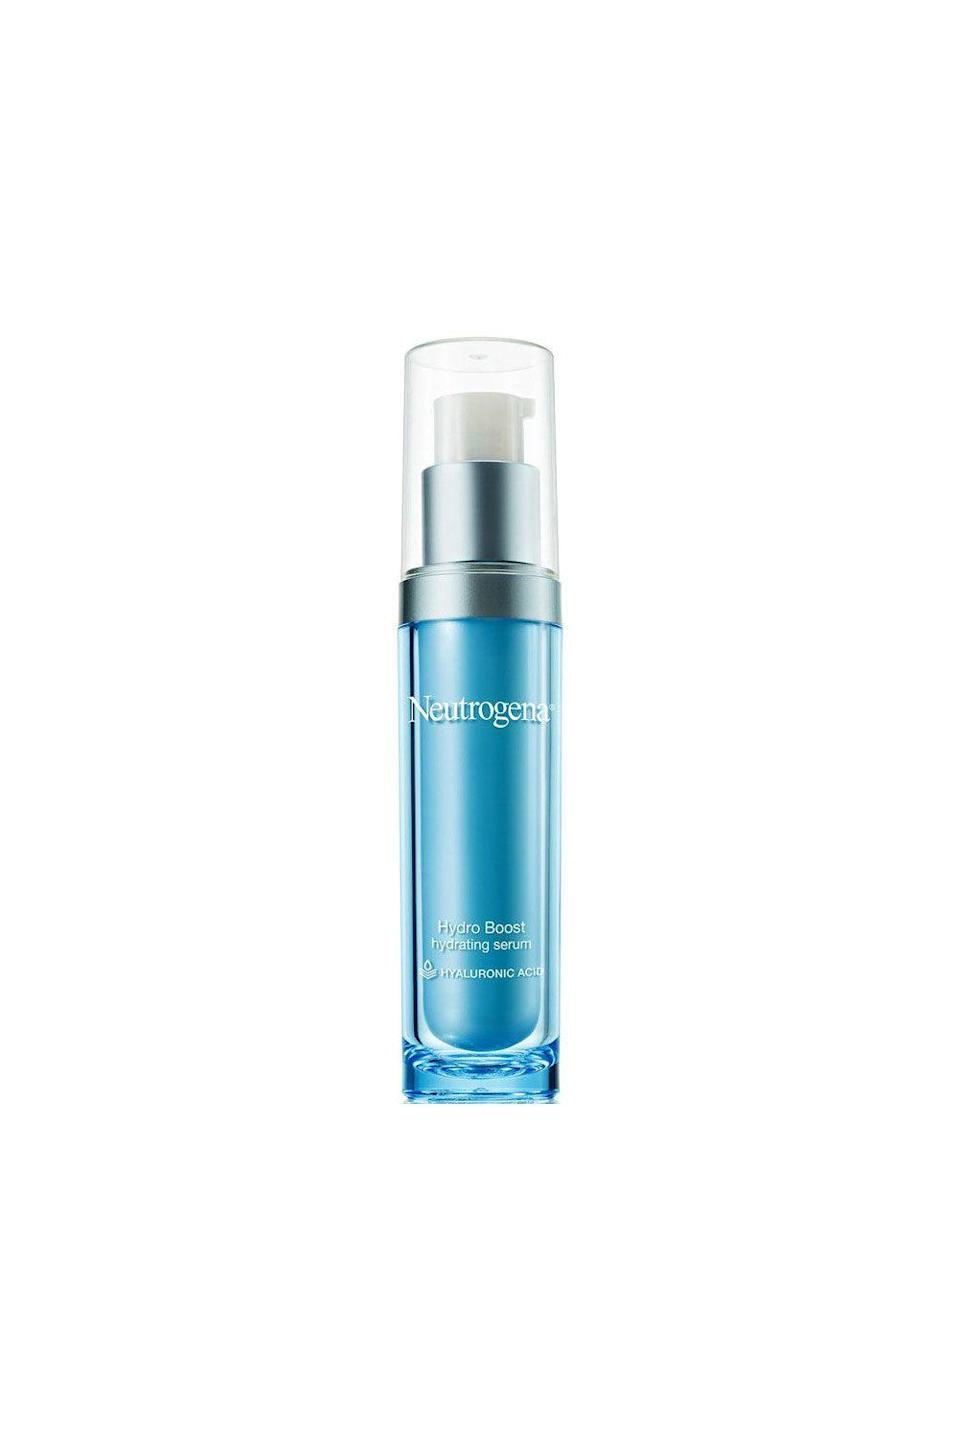 """<p><strong>Neutrogena</strong></p><p>ulta.com</p><p><strong>$24.99</strong></p><p><a href=""""https://go.redirectingat.com?id=74968X1596630&url=https%3A%2F%2Fwww.ulta.com%2Fhydroboost-hydrating-serum%3FproductId%3DxlsImpprod15321219&sref=https%3A%2F%2Fwww.oprahdaily.com%2Fbeauty%2Fskin-makeup%2Fg27529759%2Fbest-hyaluronic-acid-serum%2F"""" rel=""""nofollow noopener"""" target=""""_blank"""" data-ylk=""""slk:SHOP NOW"""" class=""""link rapid-noclick-resp"""">SHOP NOW</a></p><p>Batra loves this serum because it's """"non-comedogenic, meaning it will not clog pores, and it's lightweight while still hydrating."""" Plus, it's pricetag is more affordable than most hyaluronic acid serums on the market. </p>"""